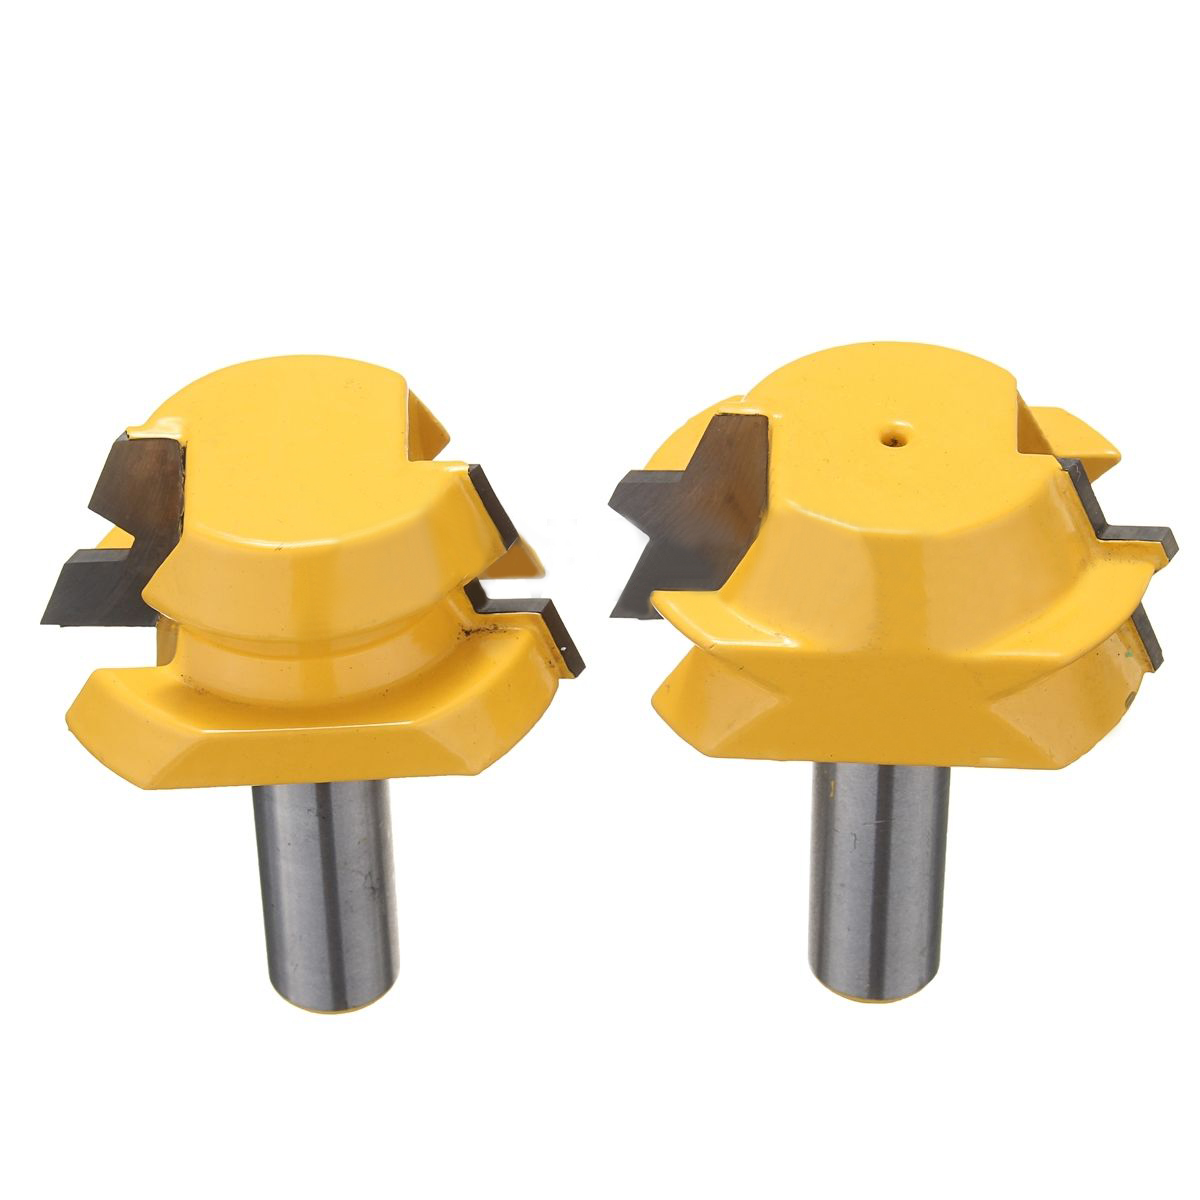 2pcs/set Router Bit 1/2 Shank Mayitr Carbide Alloy 22.5 Degree Router Bits Lock Miter Tools For Woodworking Engraving Machine high grade carbide alloy 1 2 shank 2 1 4 dia bottom cleaning router bit woodworking milling cutter for mdf wood 55mm mayitr